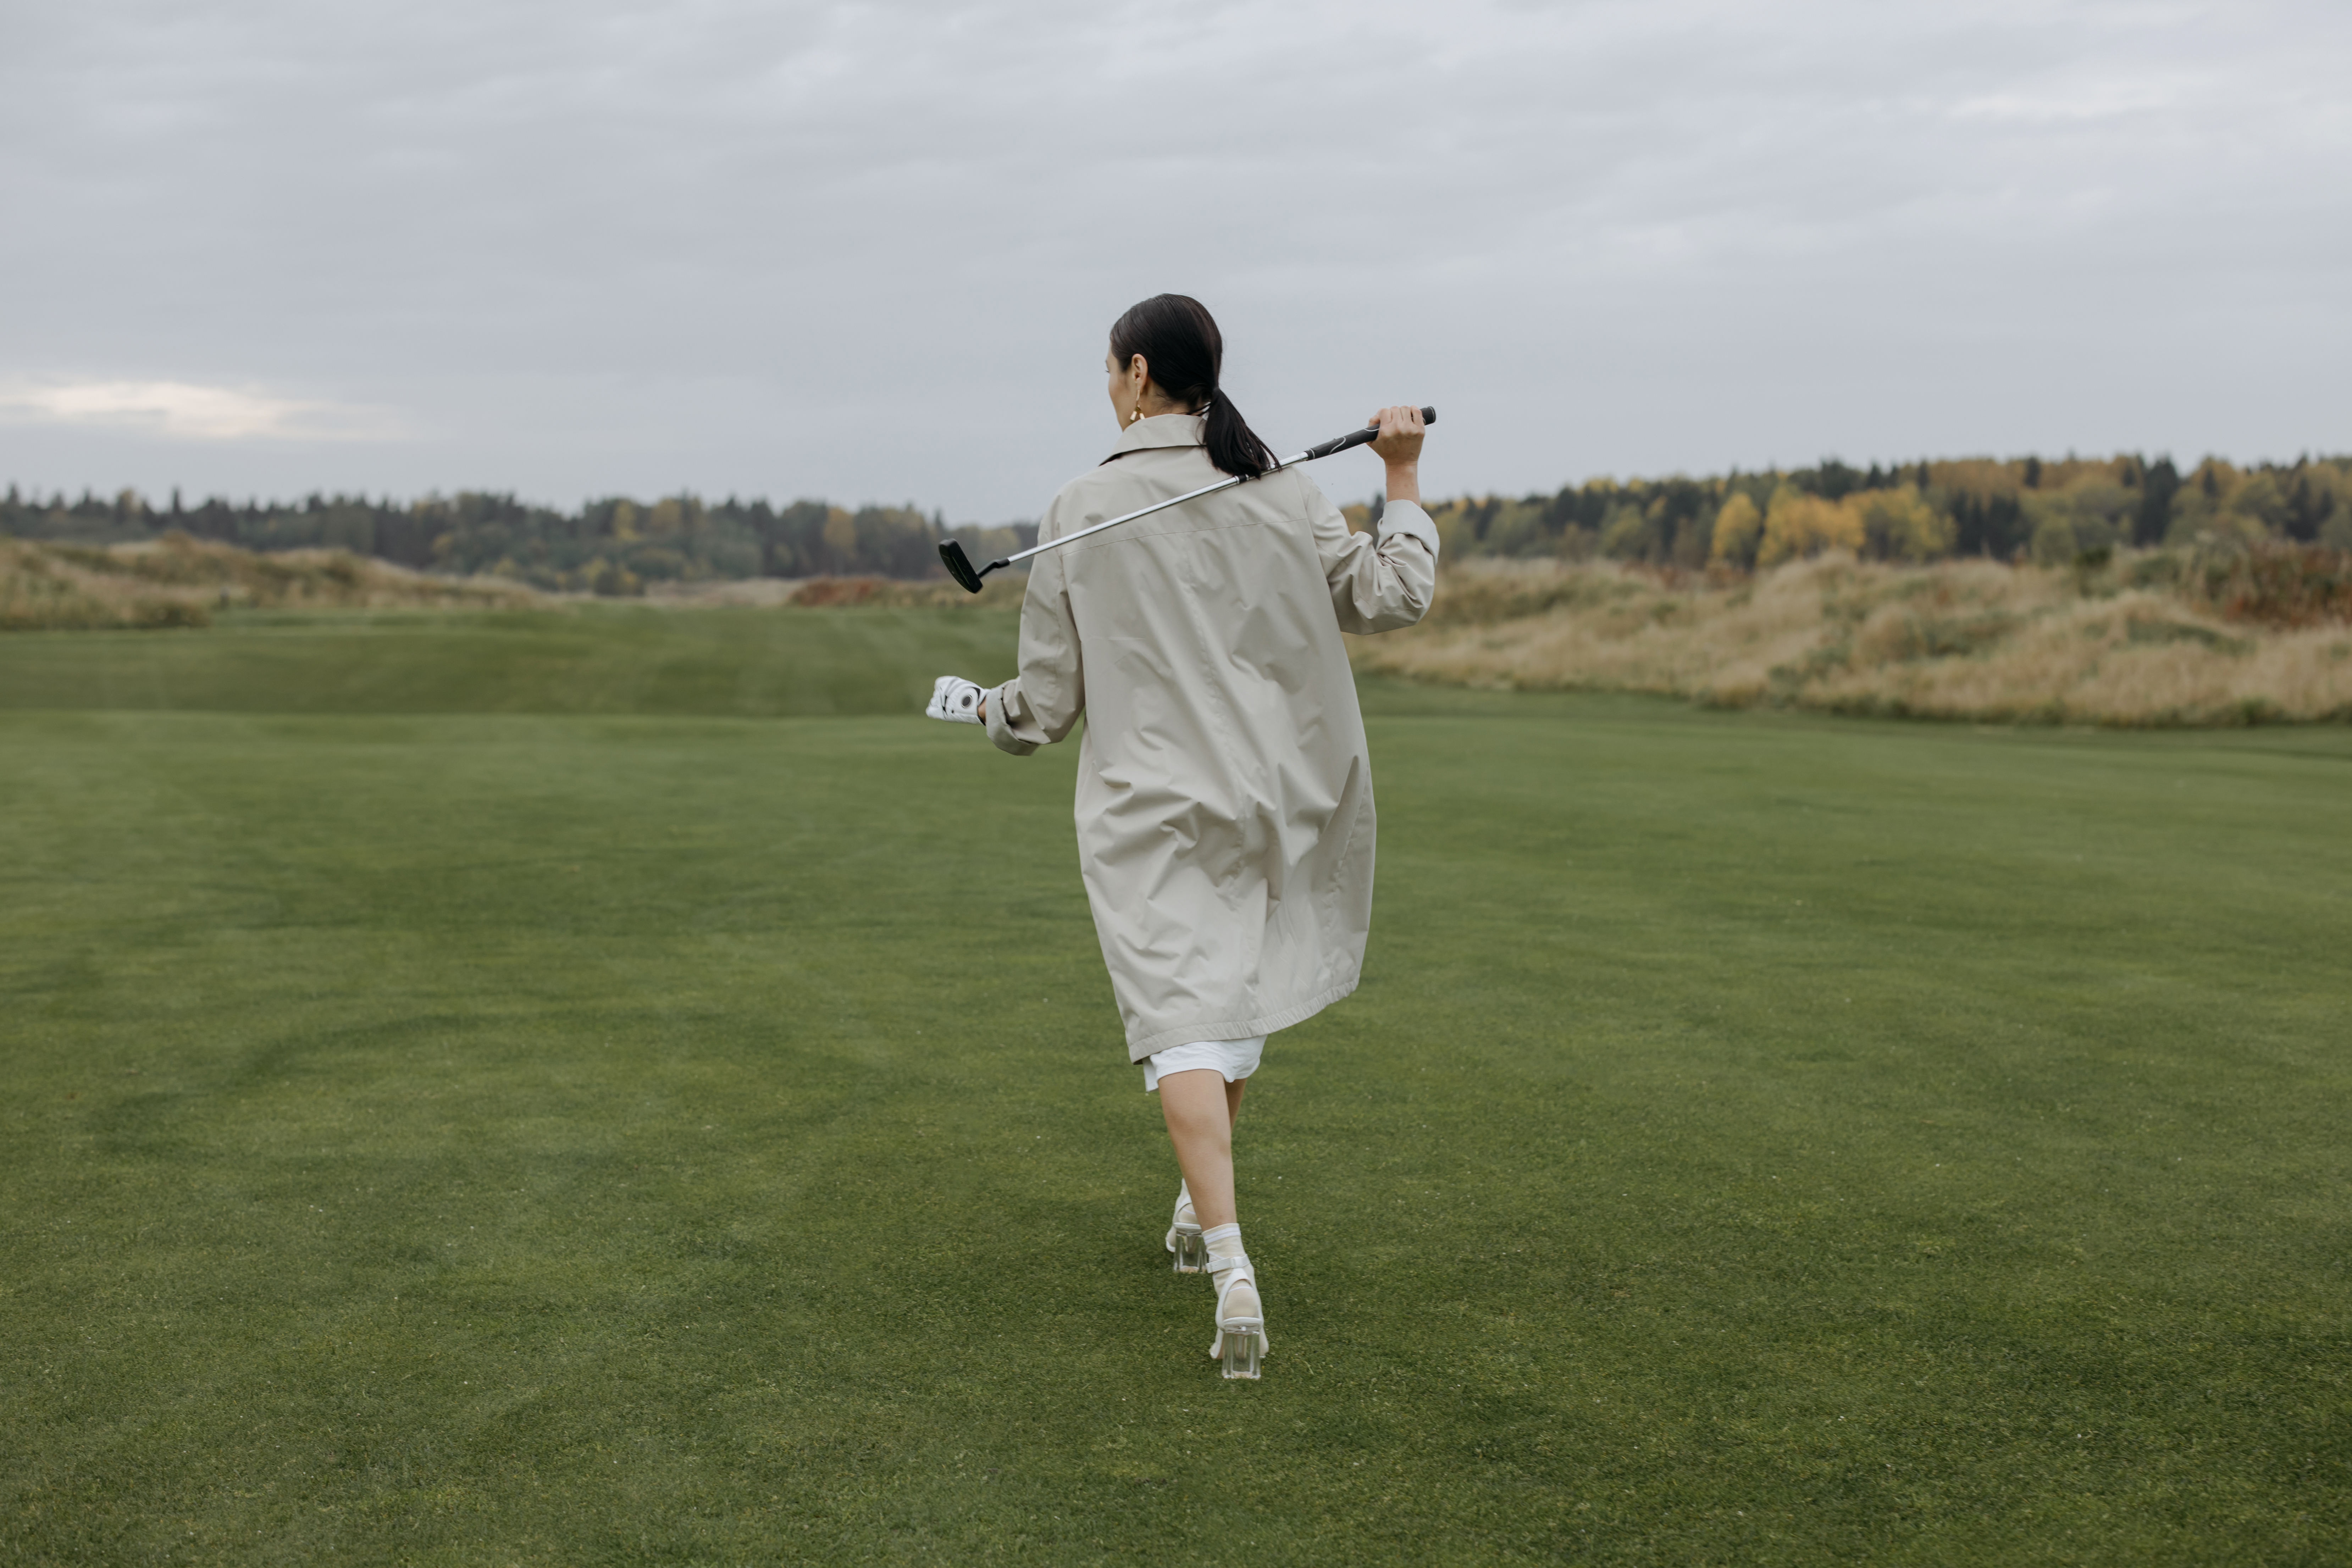 man in white dress shirt and white shorts standing on green grass field